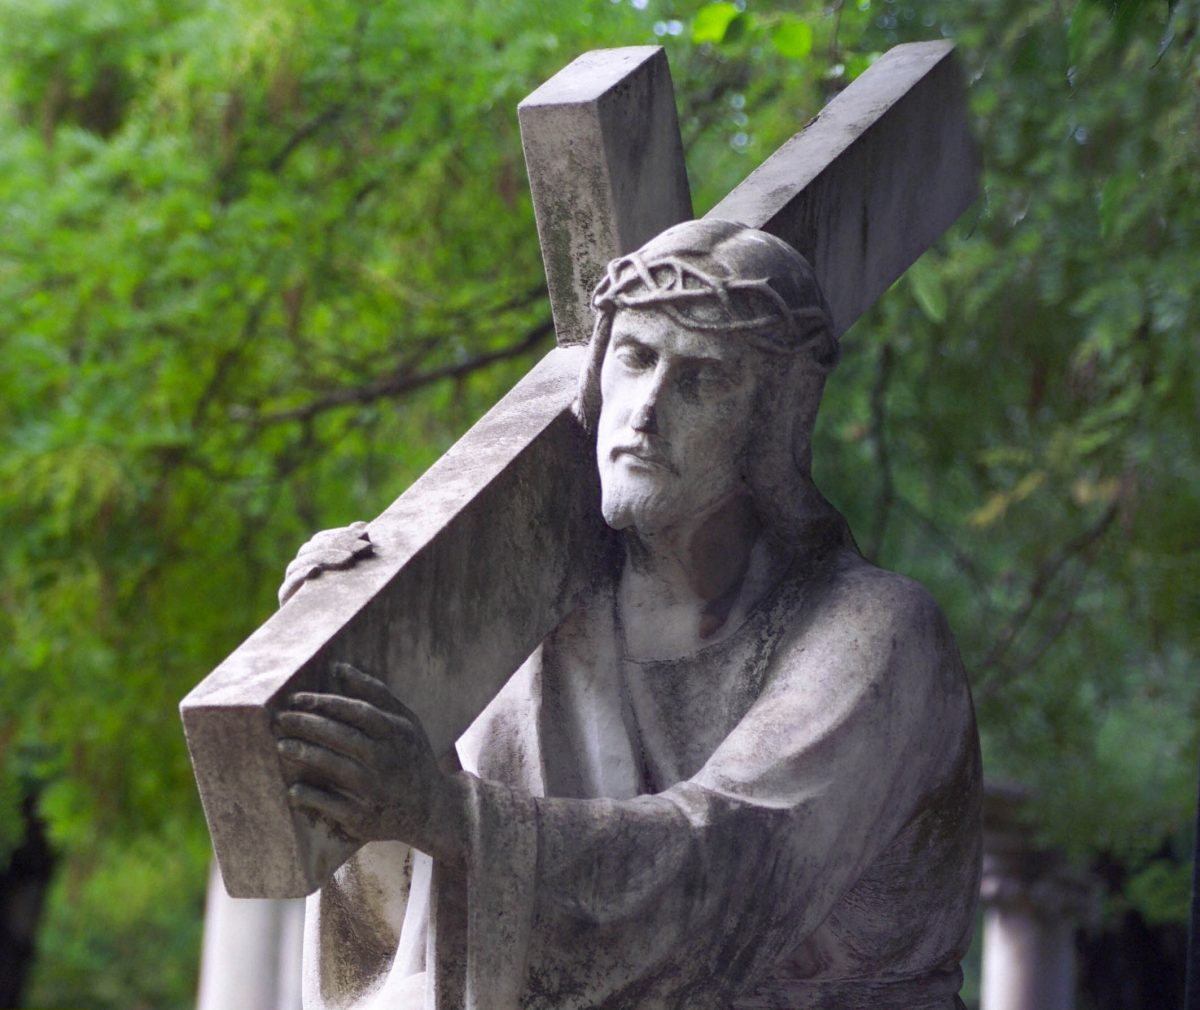 A statue of Jesus Christ carrying his cross